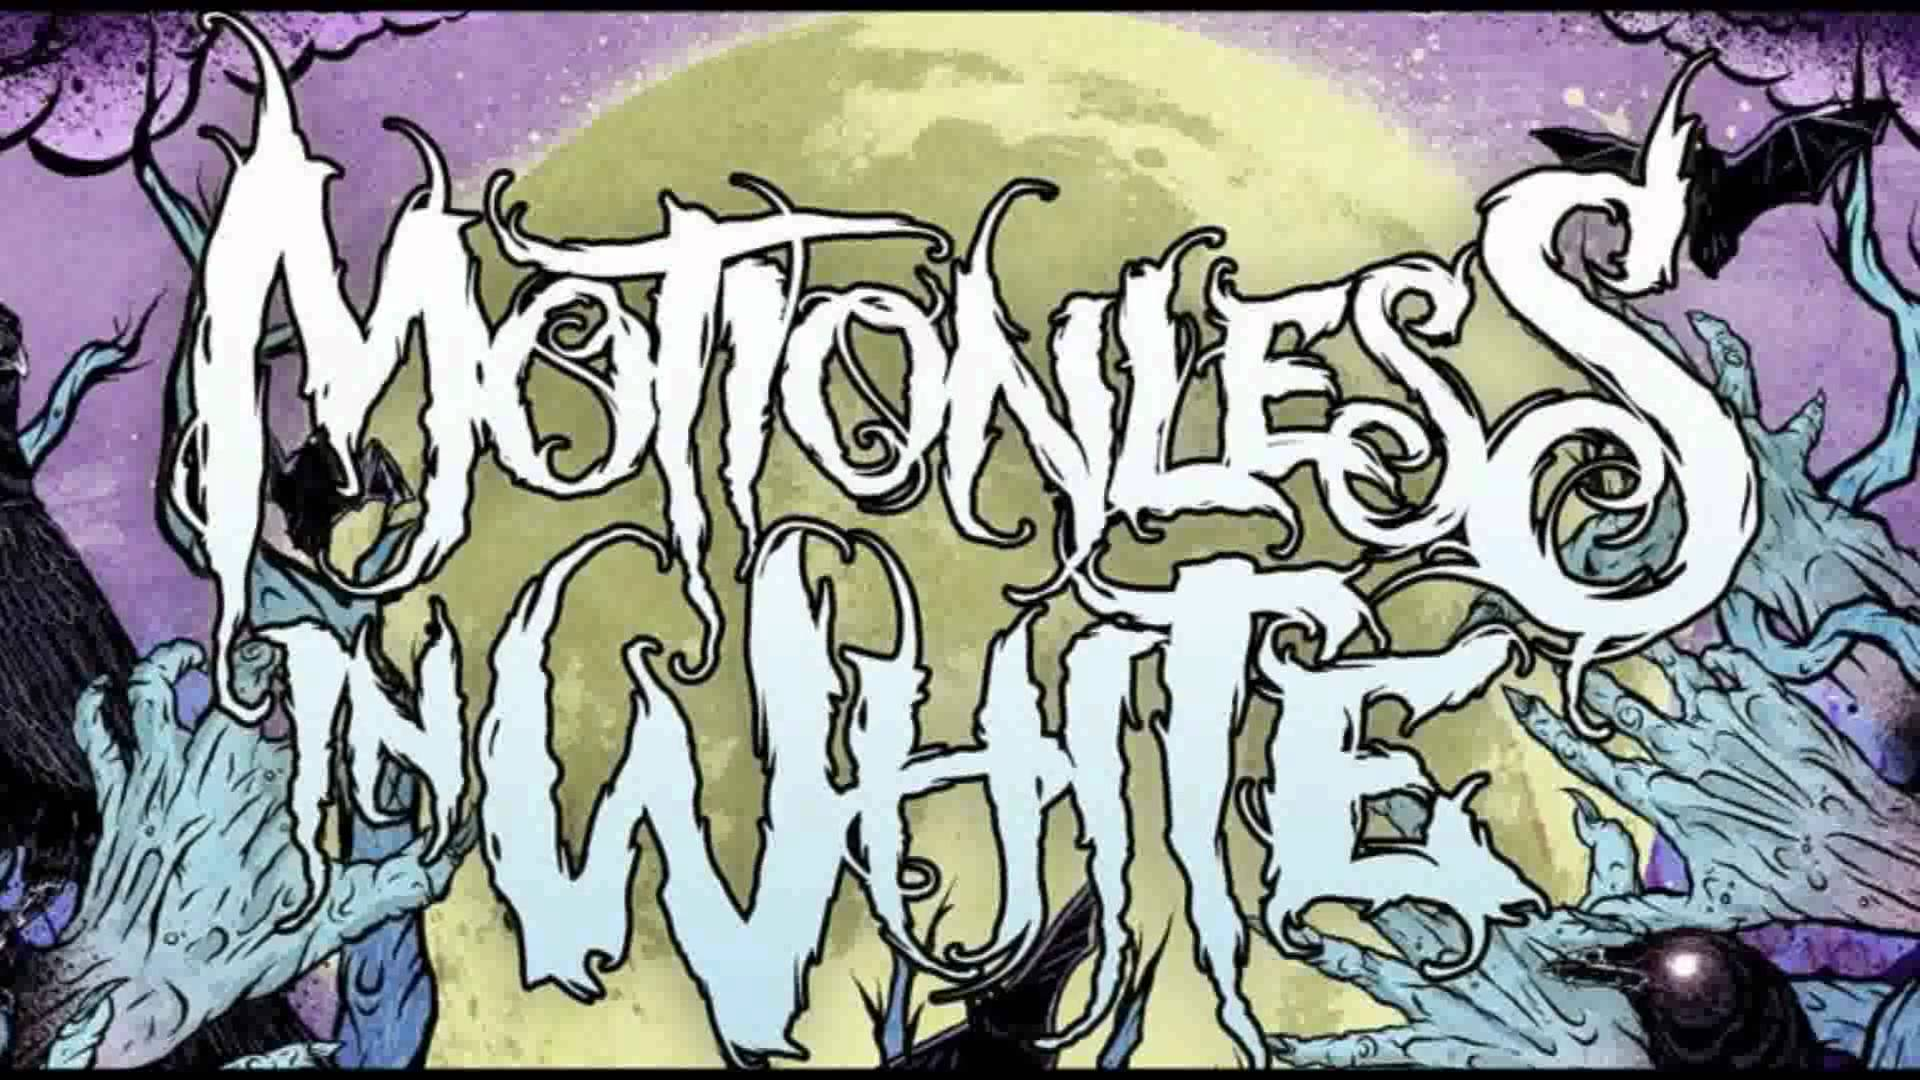 MOTIONLESS IN WHITE WALLPAPERS FREE Wallpapers Background images 1920x1080